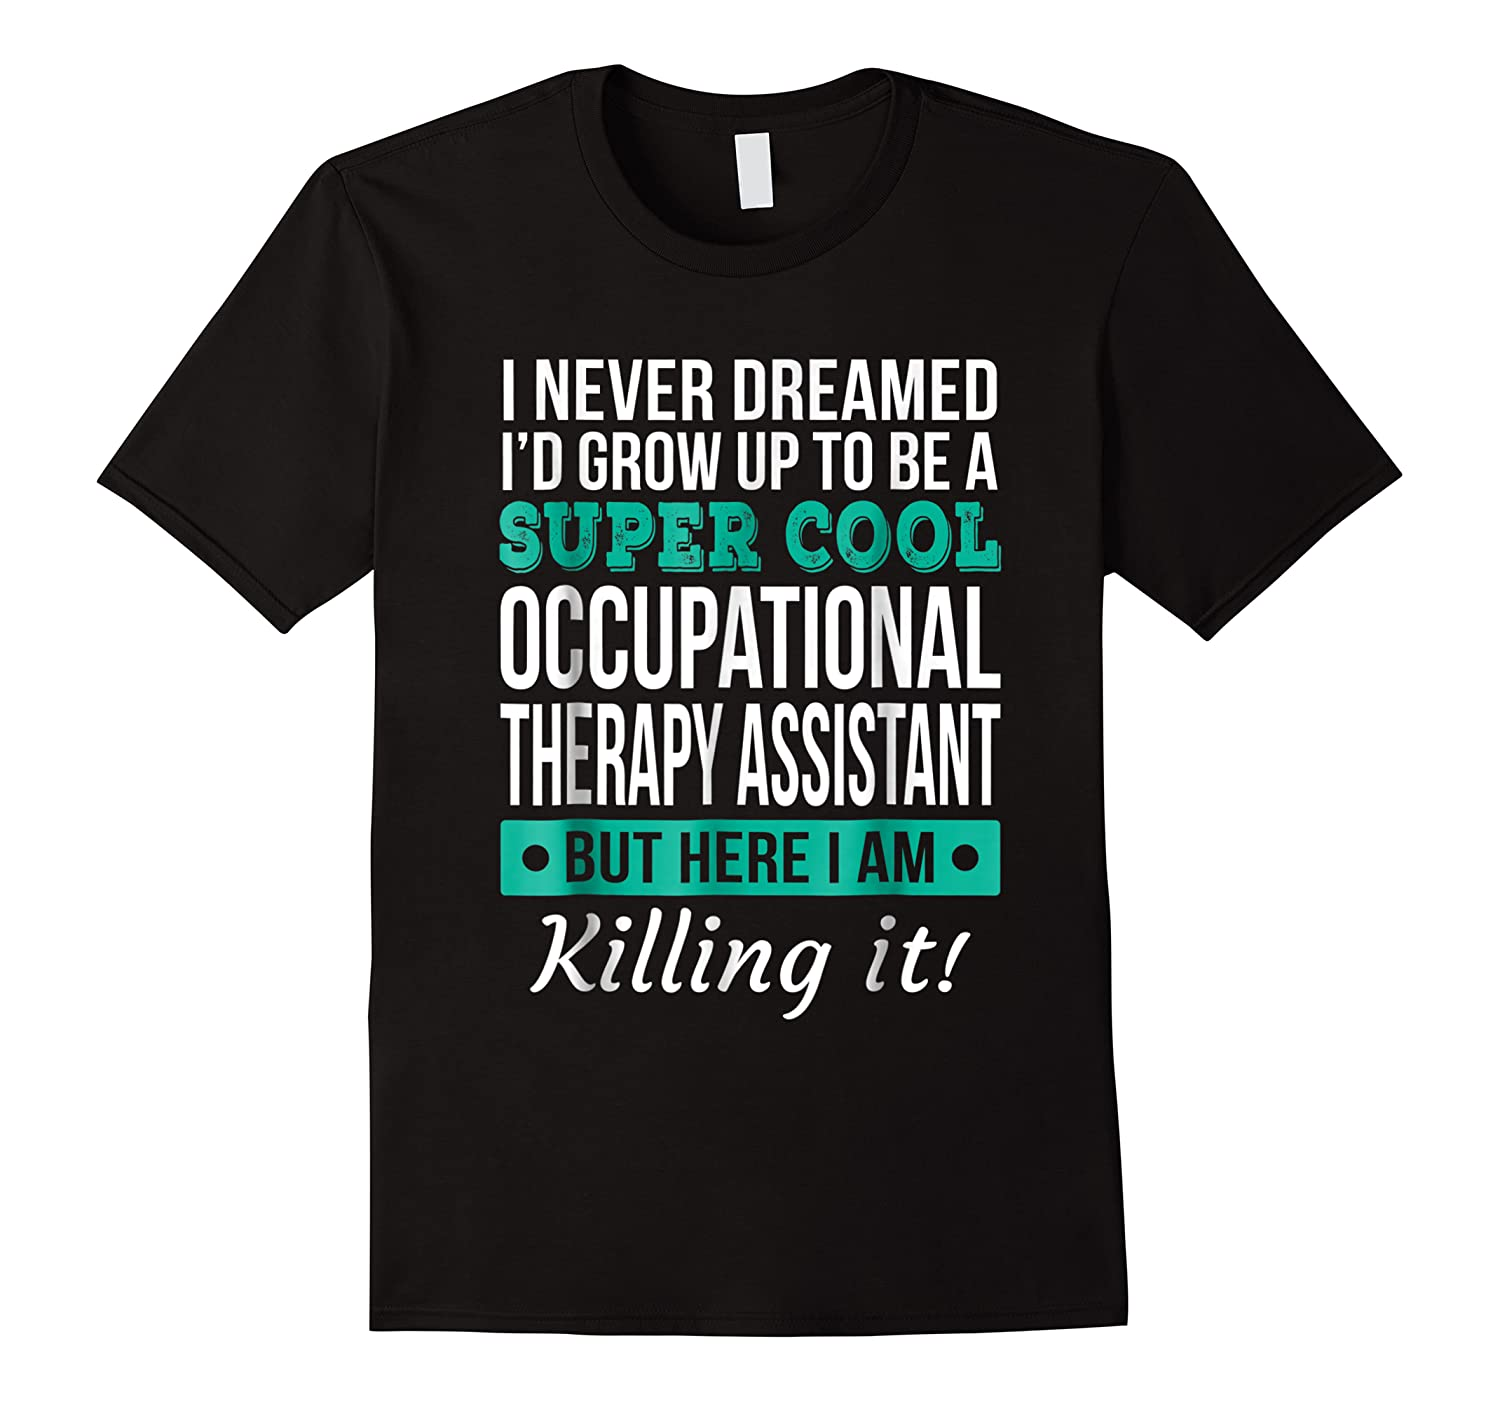 Super Cool Occupational Therapy Assistant T-shirt Funny Gift